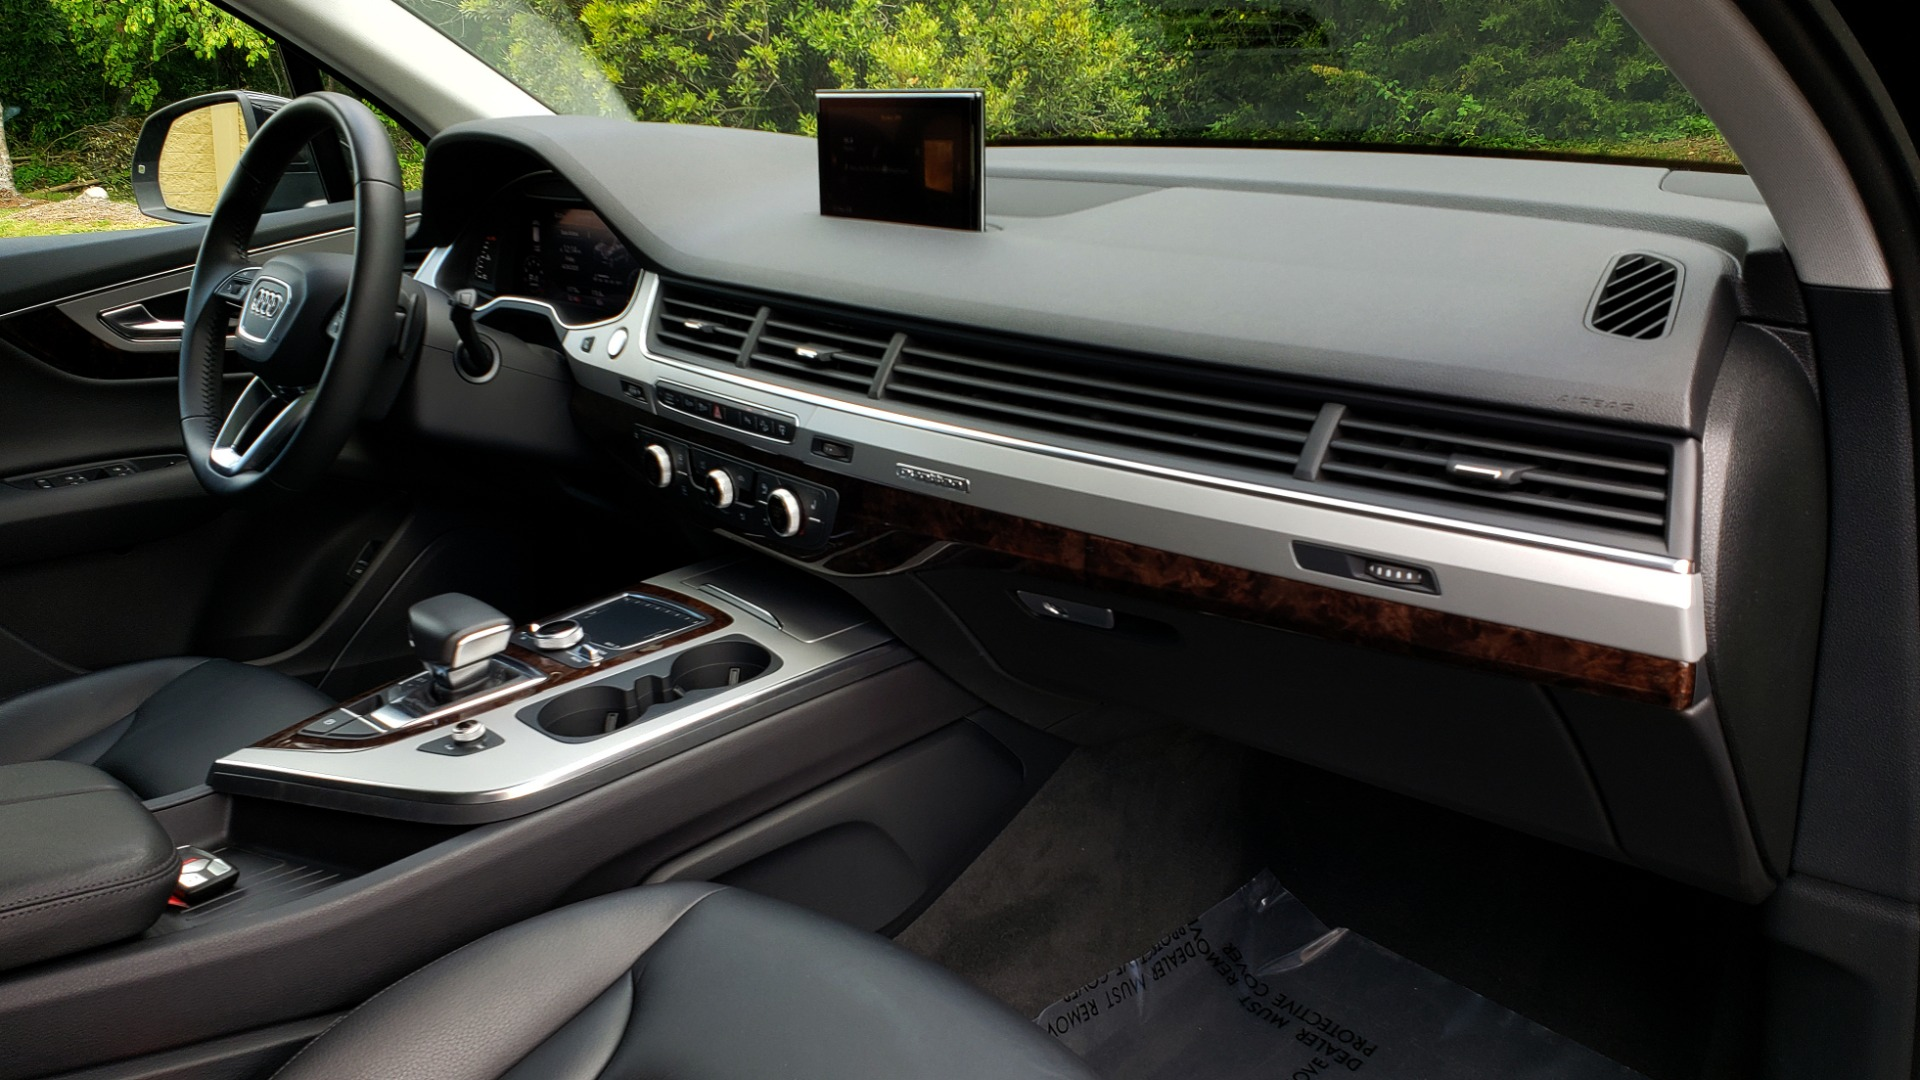 Used 2017 Audi Q7 PREMIUM PLUS / VISION PKG / NAV / PANO-ROOF / 3-ROW / REARVIEW for sale Sold at Formula Imports in Charlotte NC 28227 72